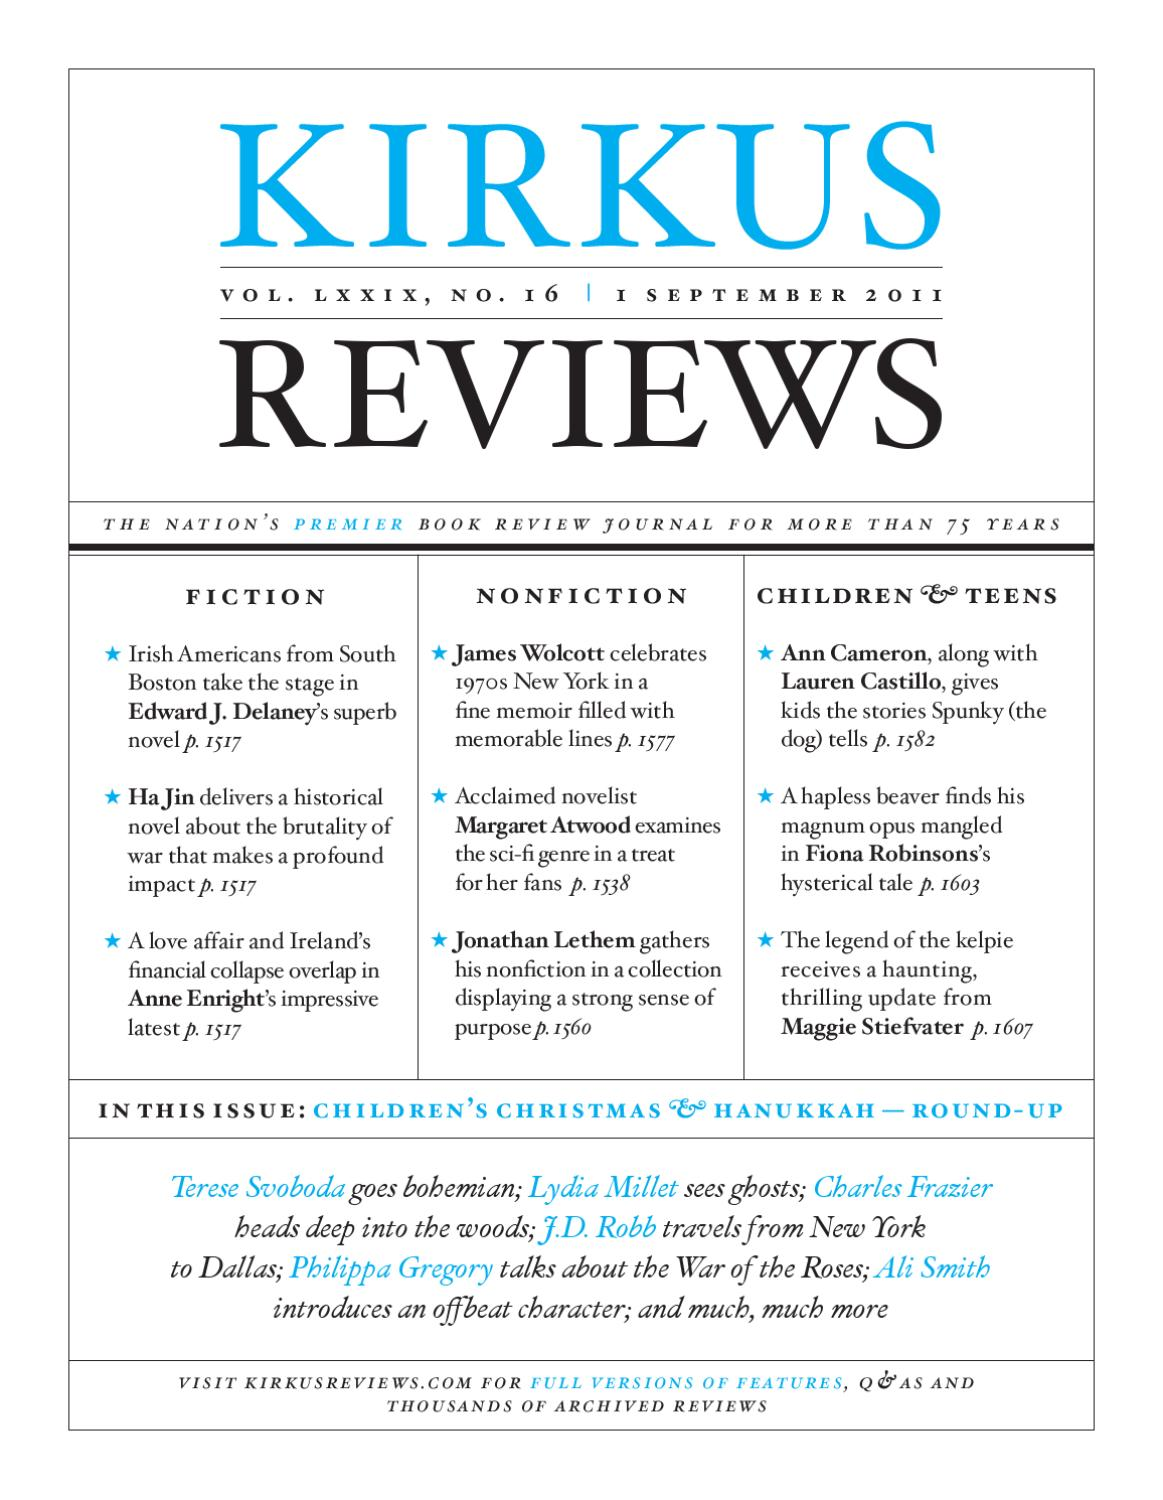 September 1 2011 volume lxxix no 16 by kirkus reviews issuu fandeluxe Choice Image